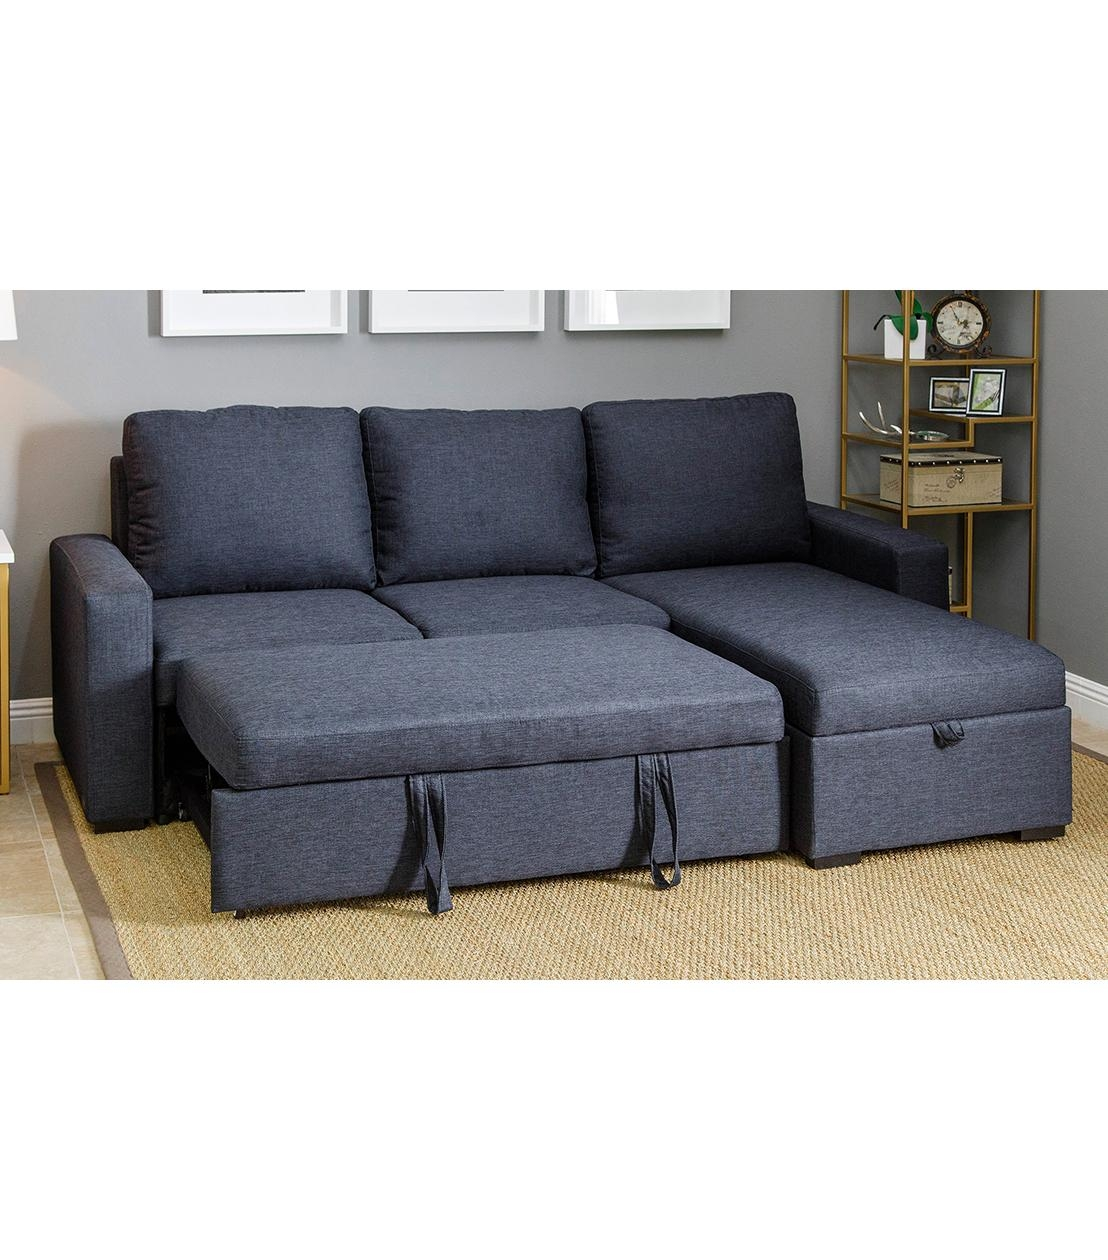 Sectionals Intended For Abbyson Sectional Sofa (Image 14 of 15)